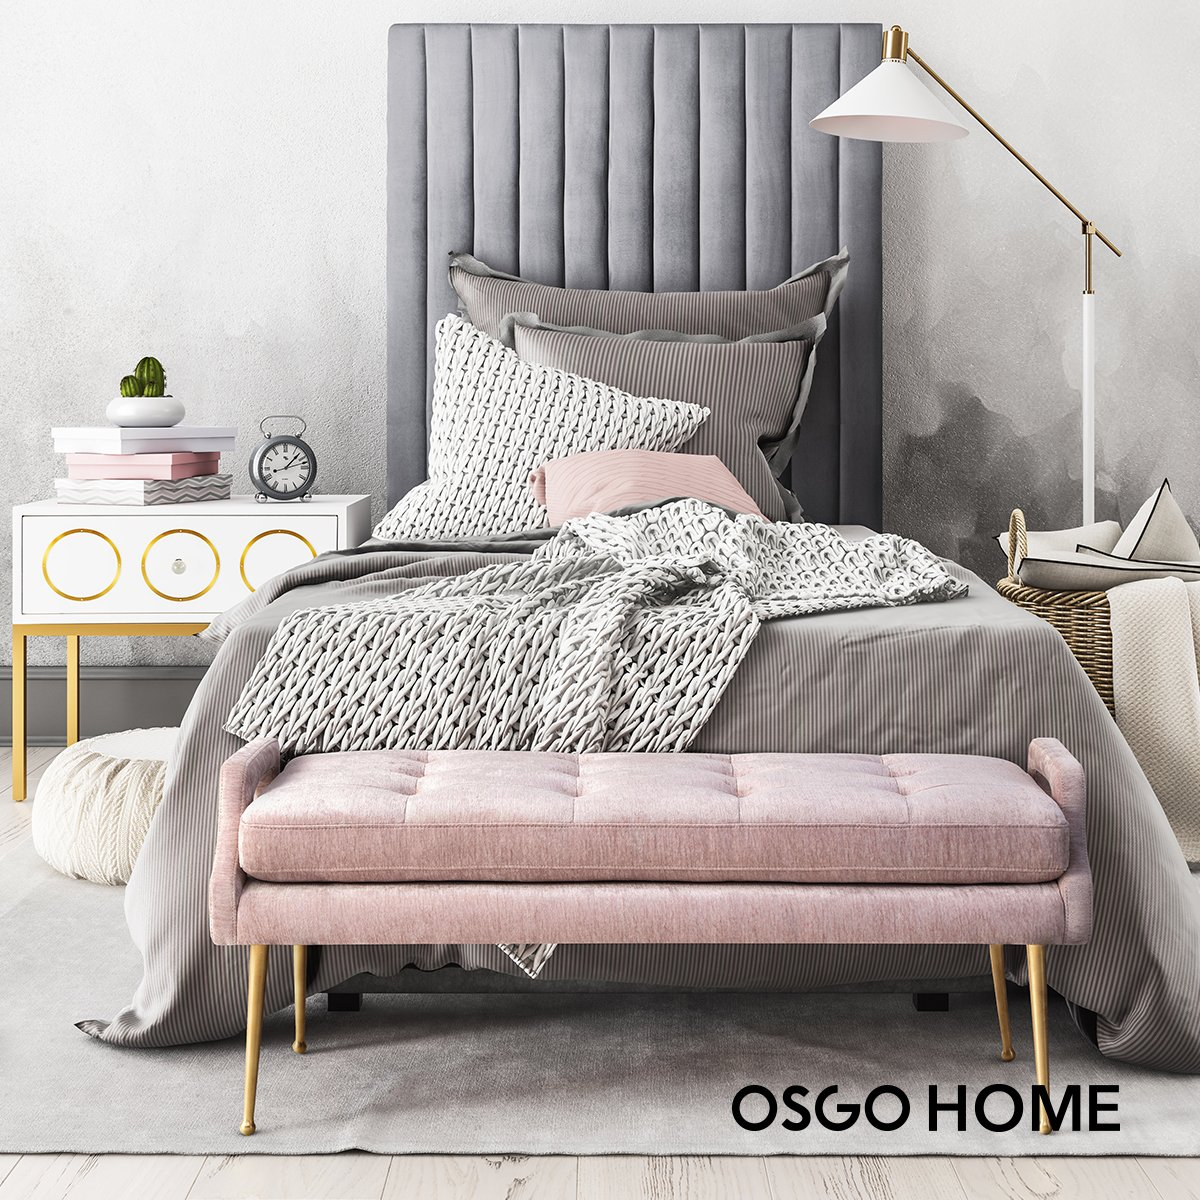 Osgo Home On Twitter Furnishing The Home Of Your